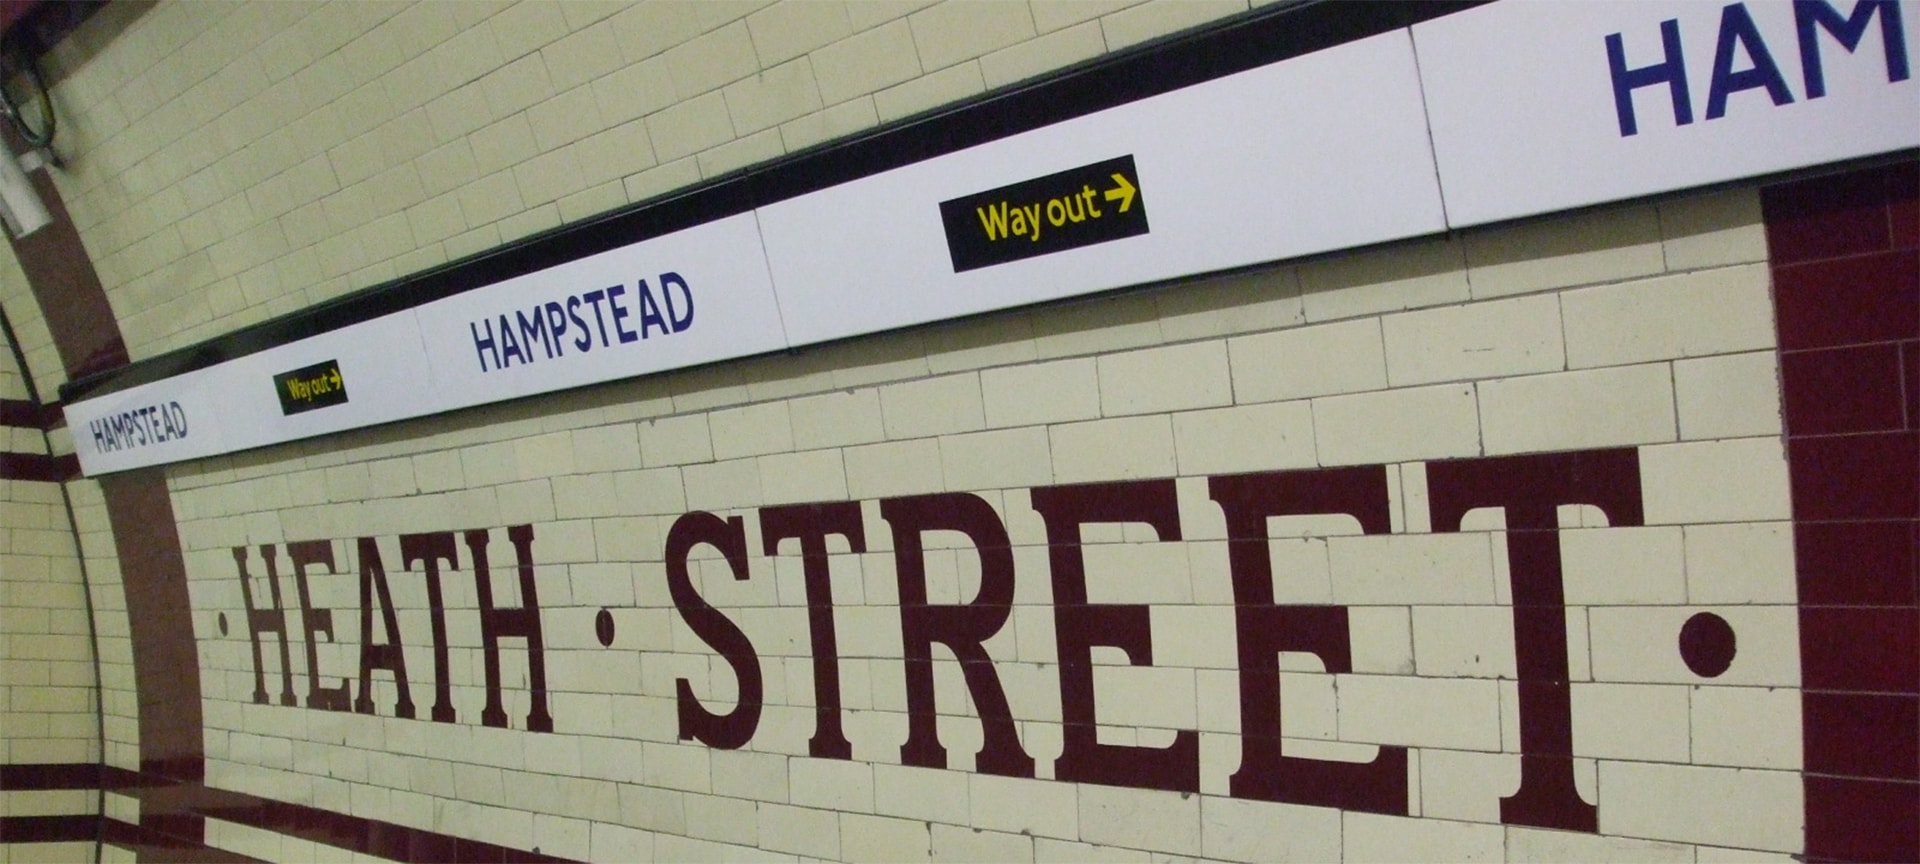 Tiling on the southbound platform of Hampstead Underground station, showing the original proposed name, Heath Street.